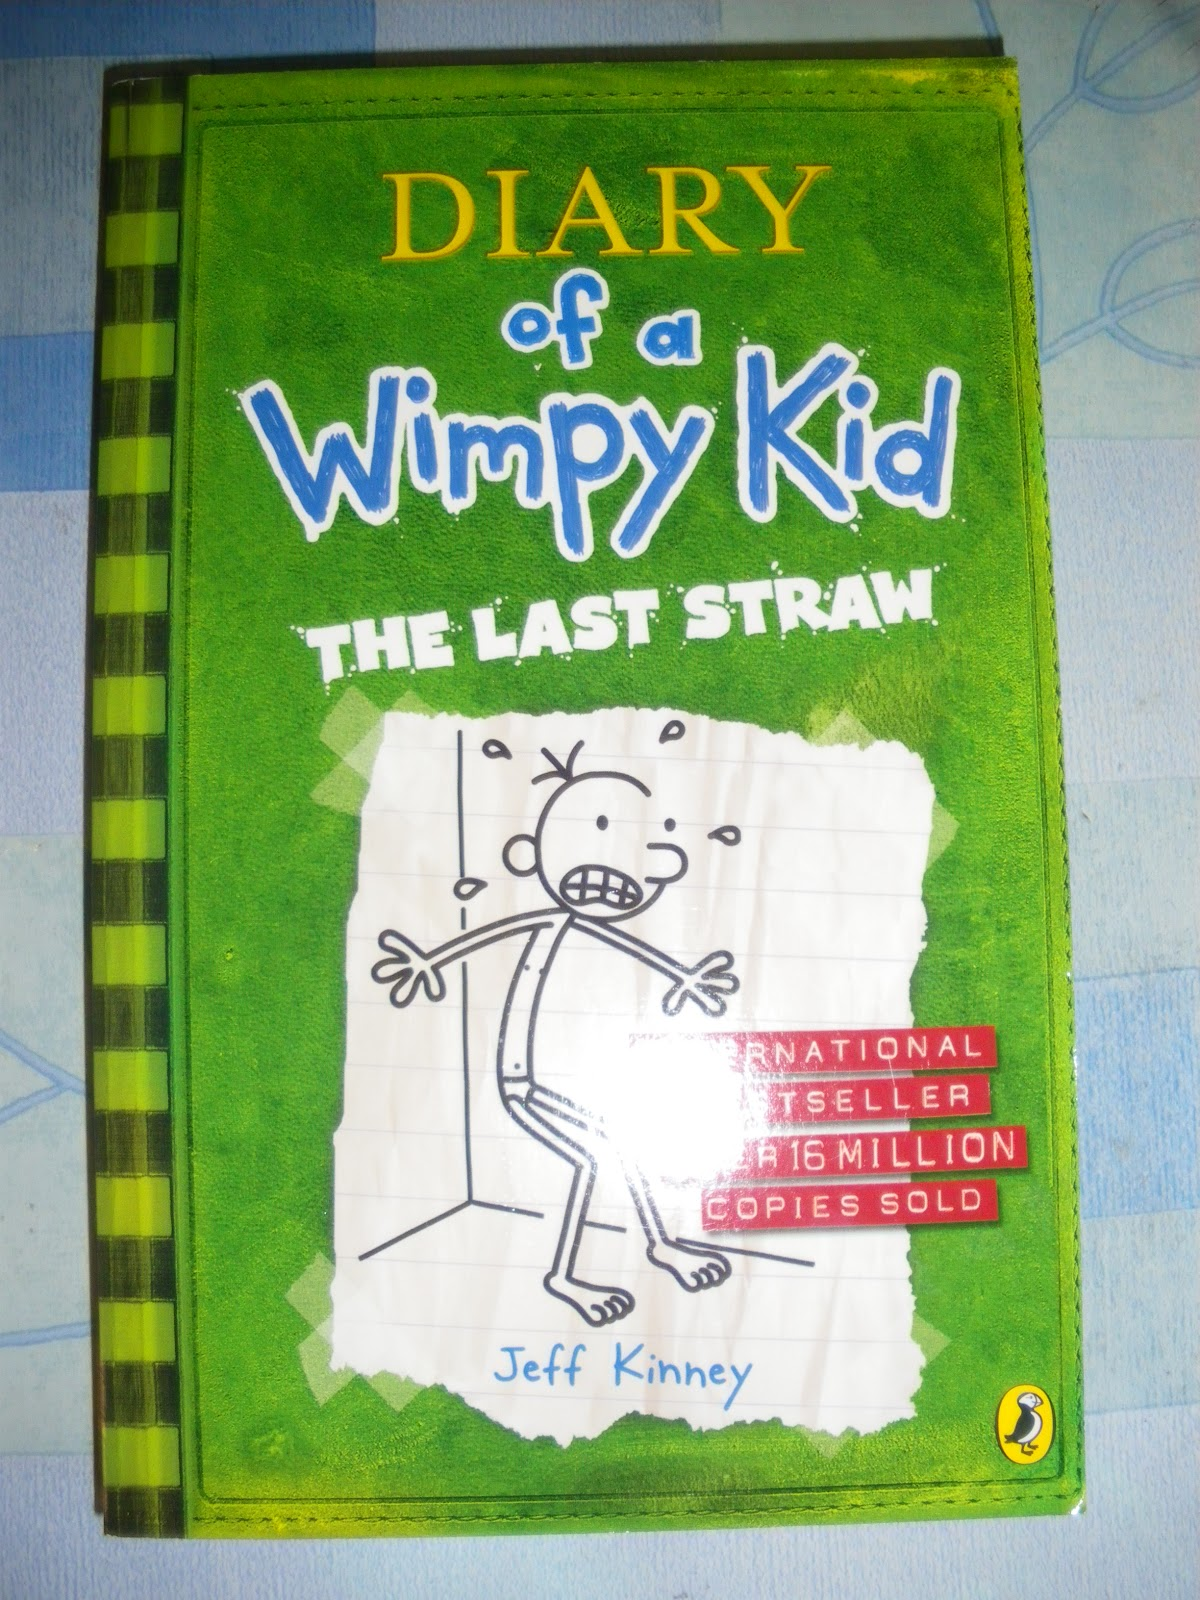 Diary Of A Fashion Mister Strictly Confidential: ENGLISH BOOKS: DIARY OF A WIMPY KID